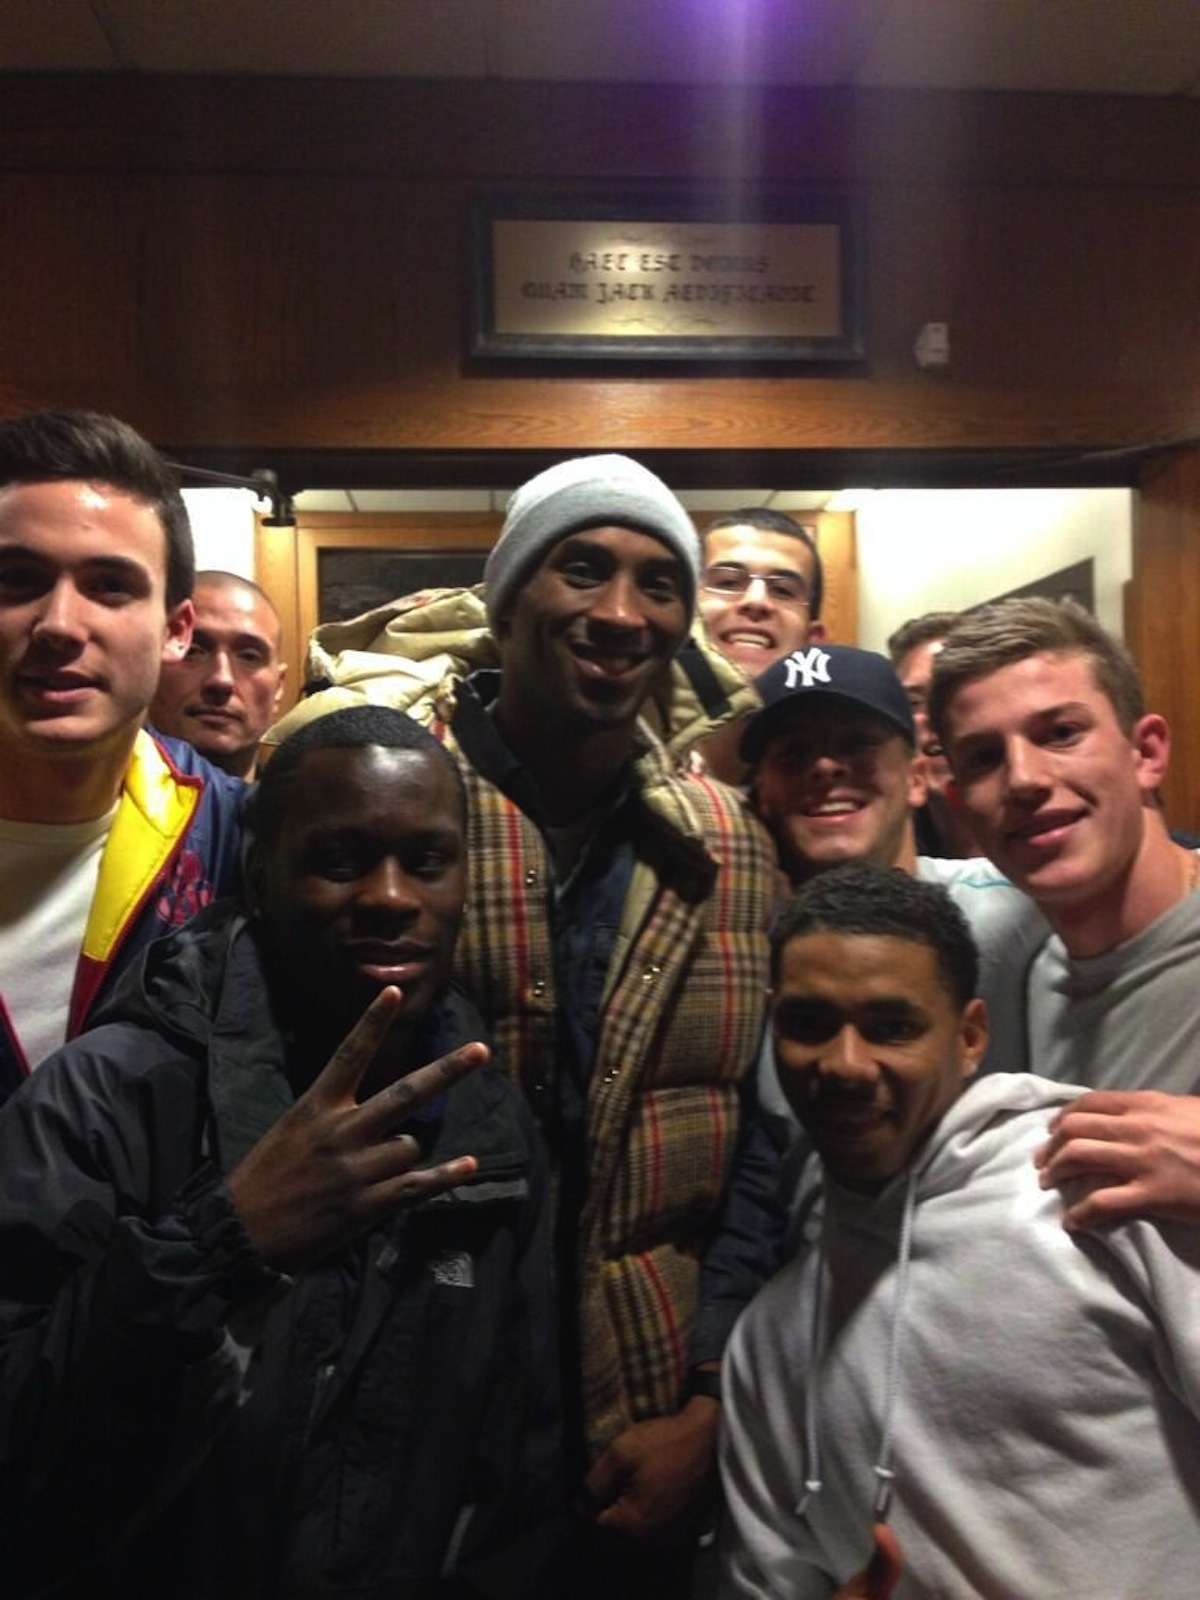 Kobe Bryant Photo Via Josh Reed On Twitter